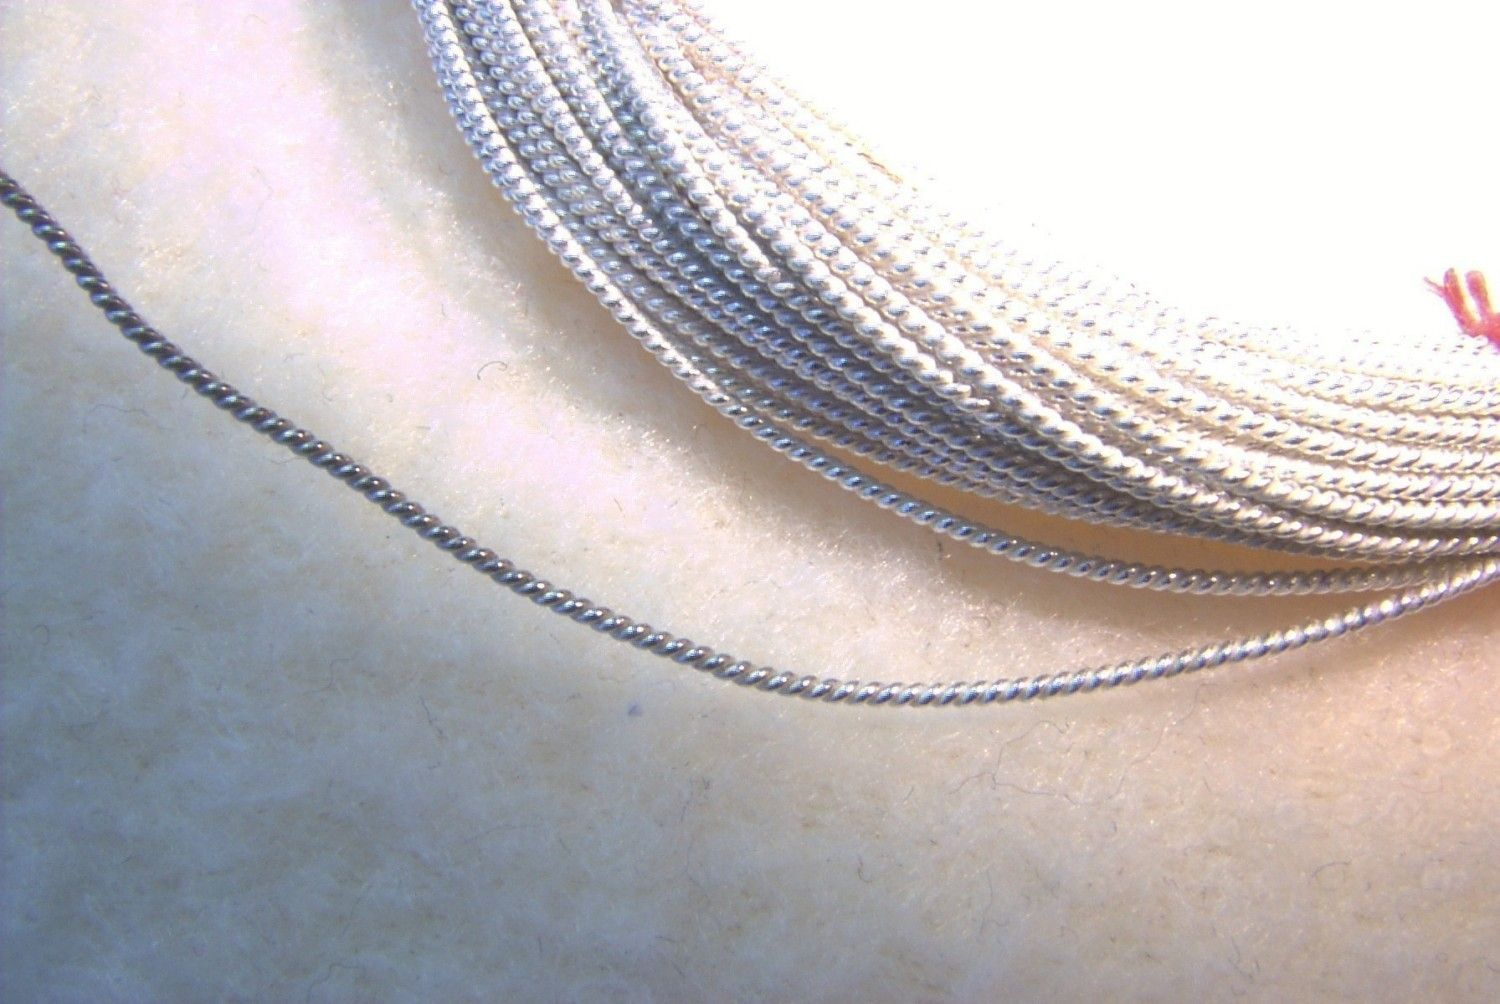 22 ga. 5 ft. TWISTED ROPE STERLING Silver Wire - Dead Soft